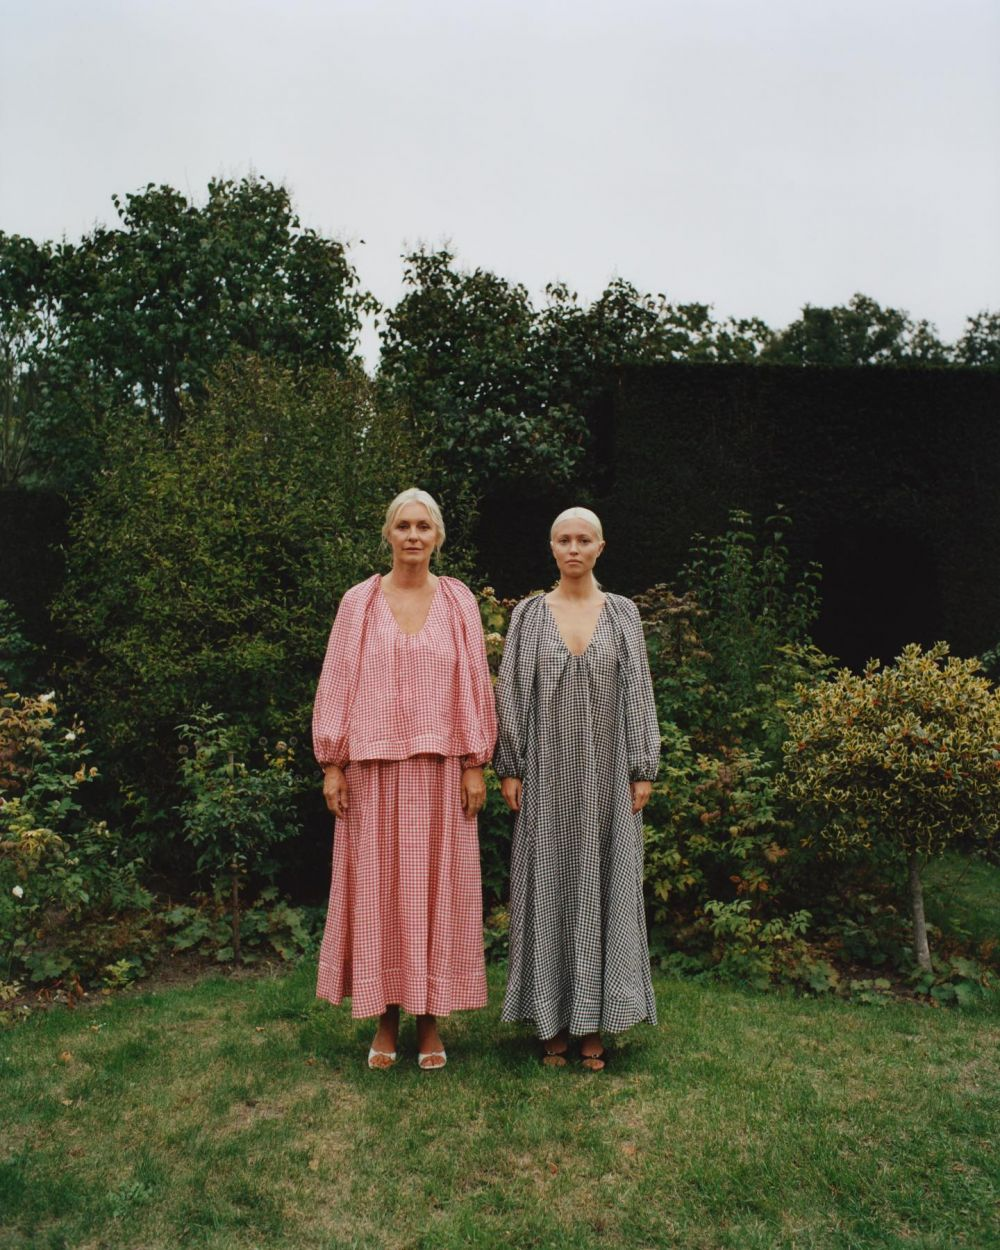 For lack of coming up with a better caption today, I just want to spread ❤️❤️❤️❤️❤️ ~ Here's my mum and I wearing the linnen Georgette pieces. 🧺🌻 Wishing you an amazing Summer x